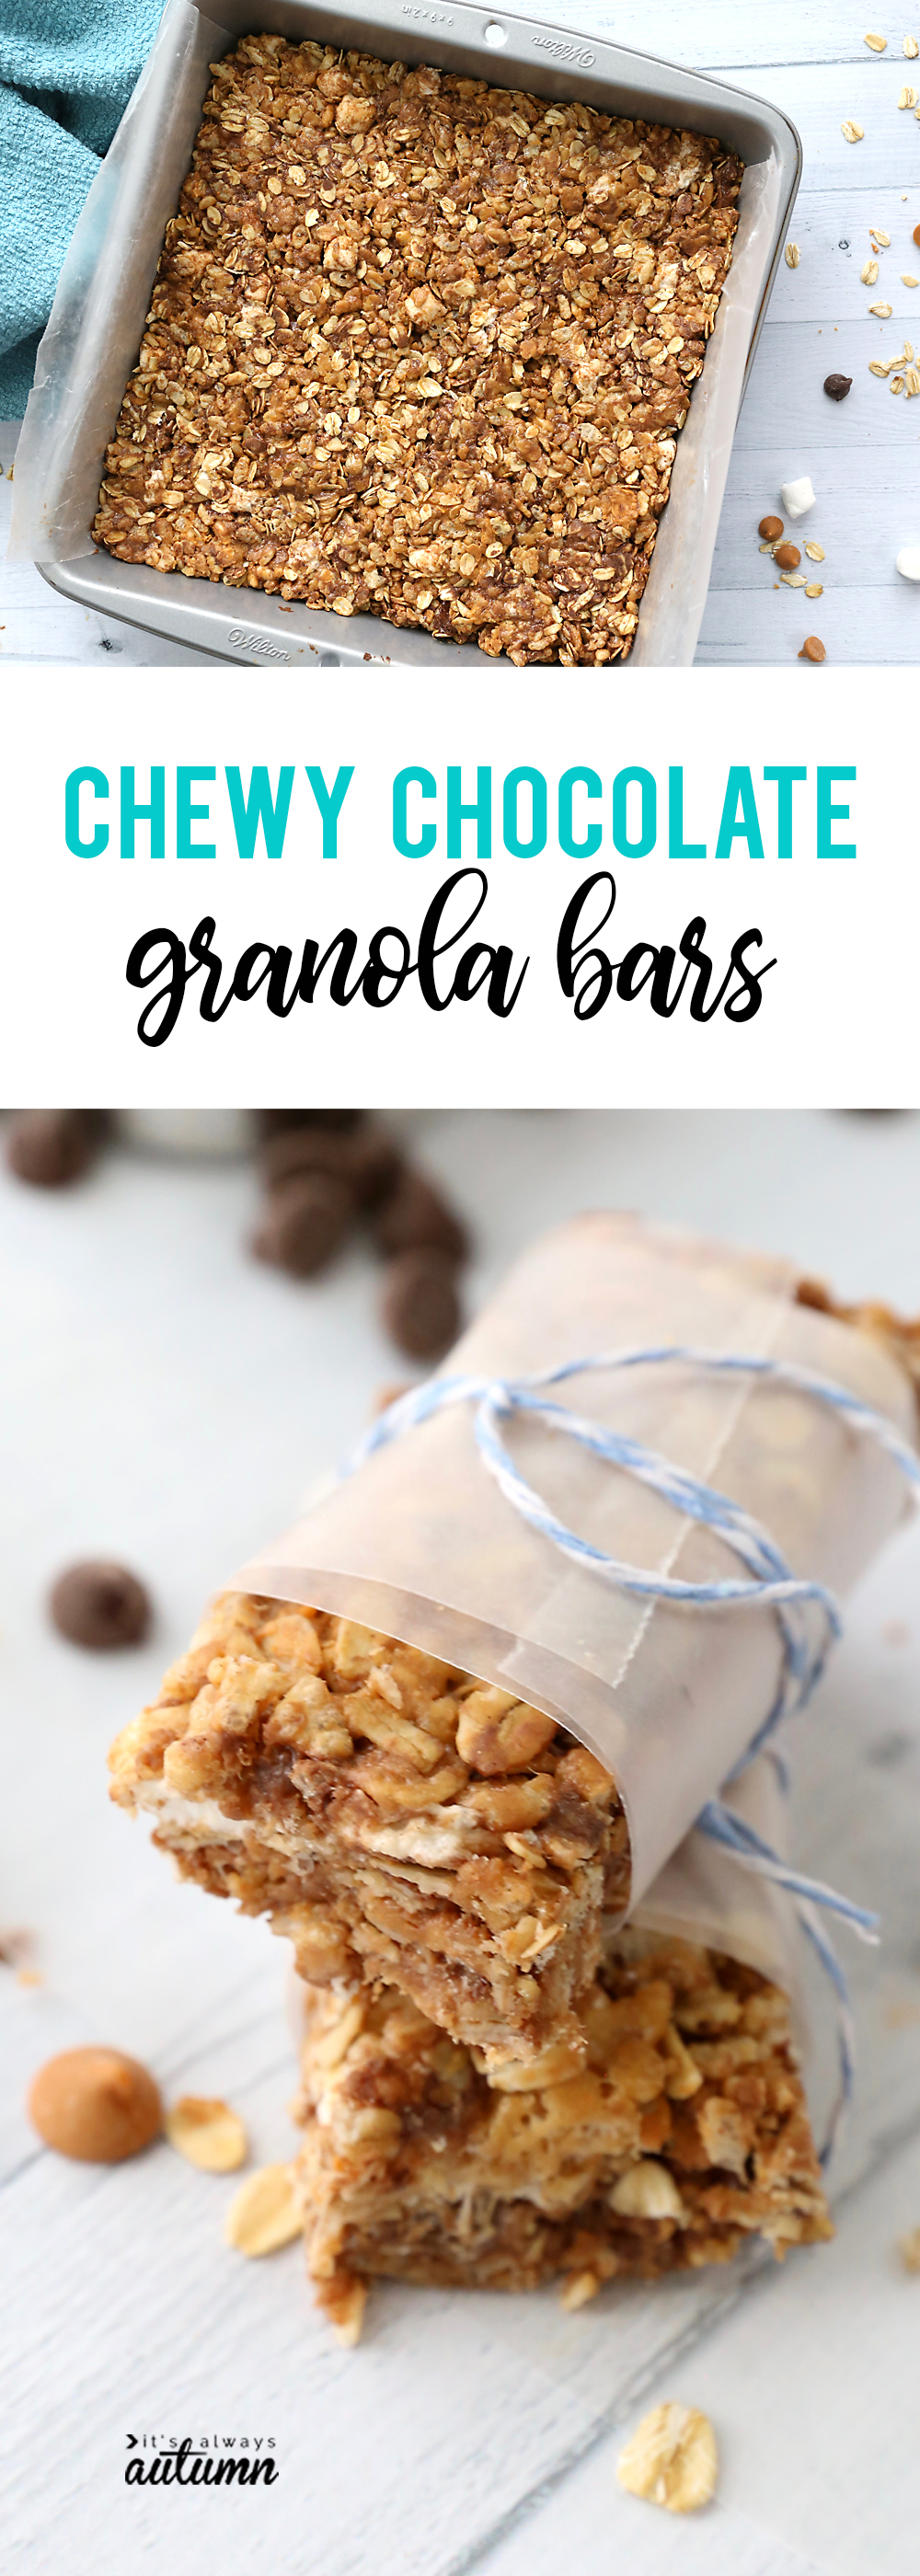 Homemade chewy chocolate granola bars are amazing! An easy snack recipe you can put together in 10 minutes that EVERYONE will love!